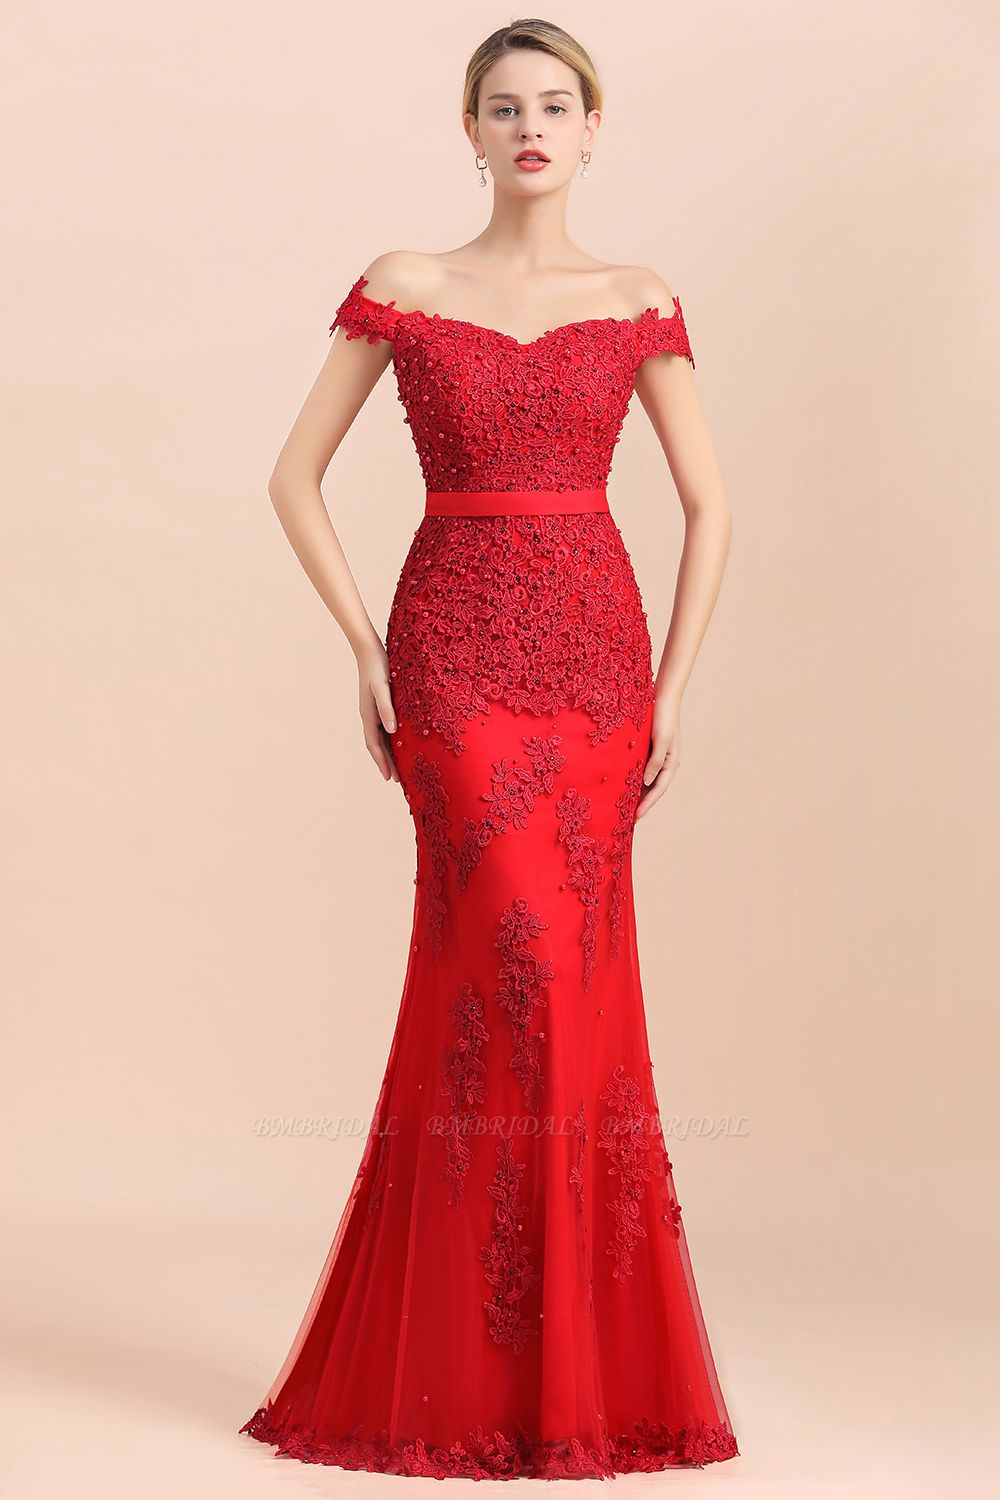 BMbridal Elegant Mermaid Off the Shoulder Red Lace Appliques Bridesmaid dresses